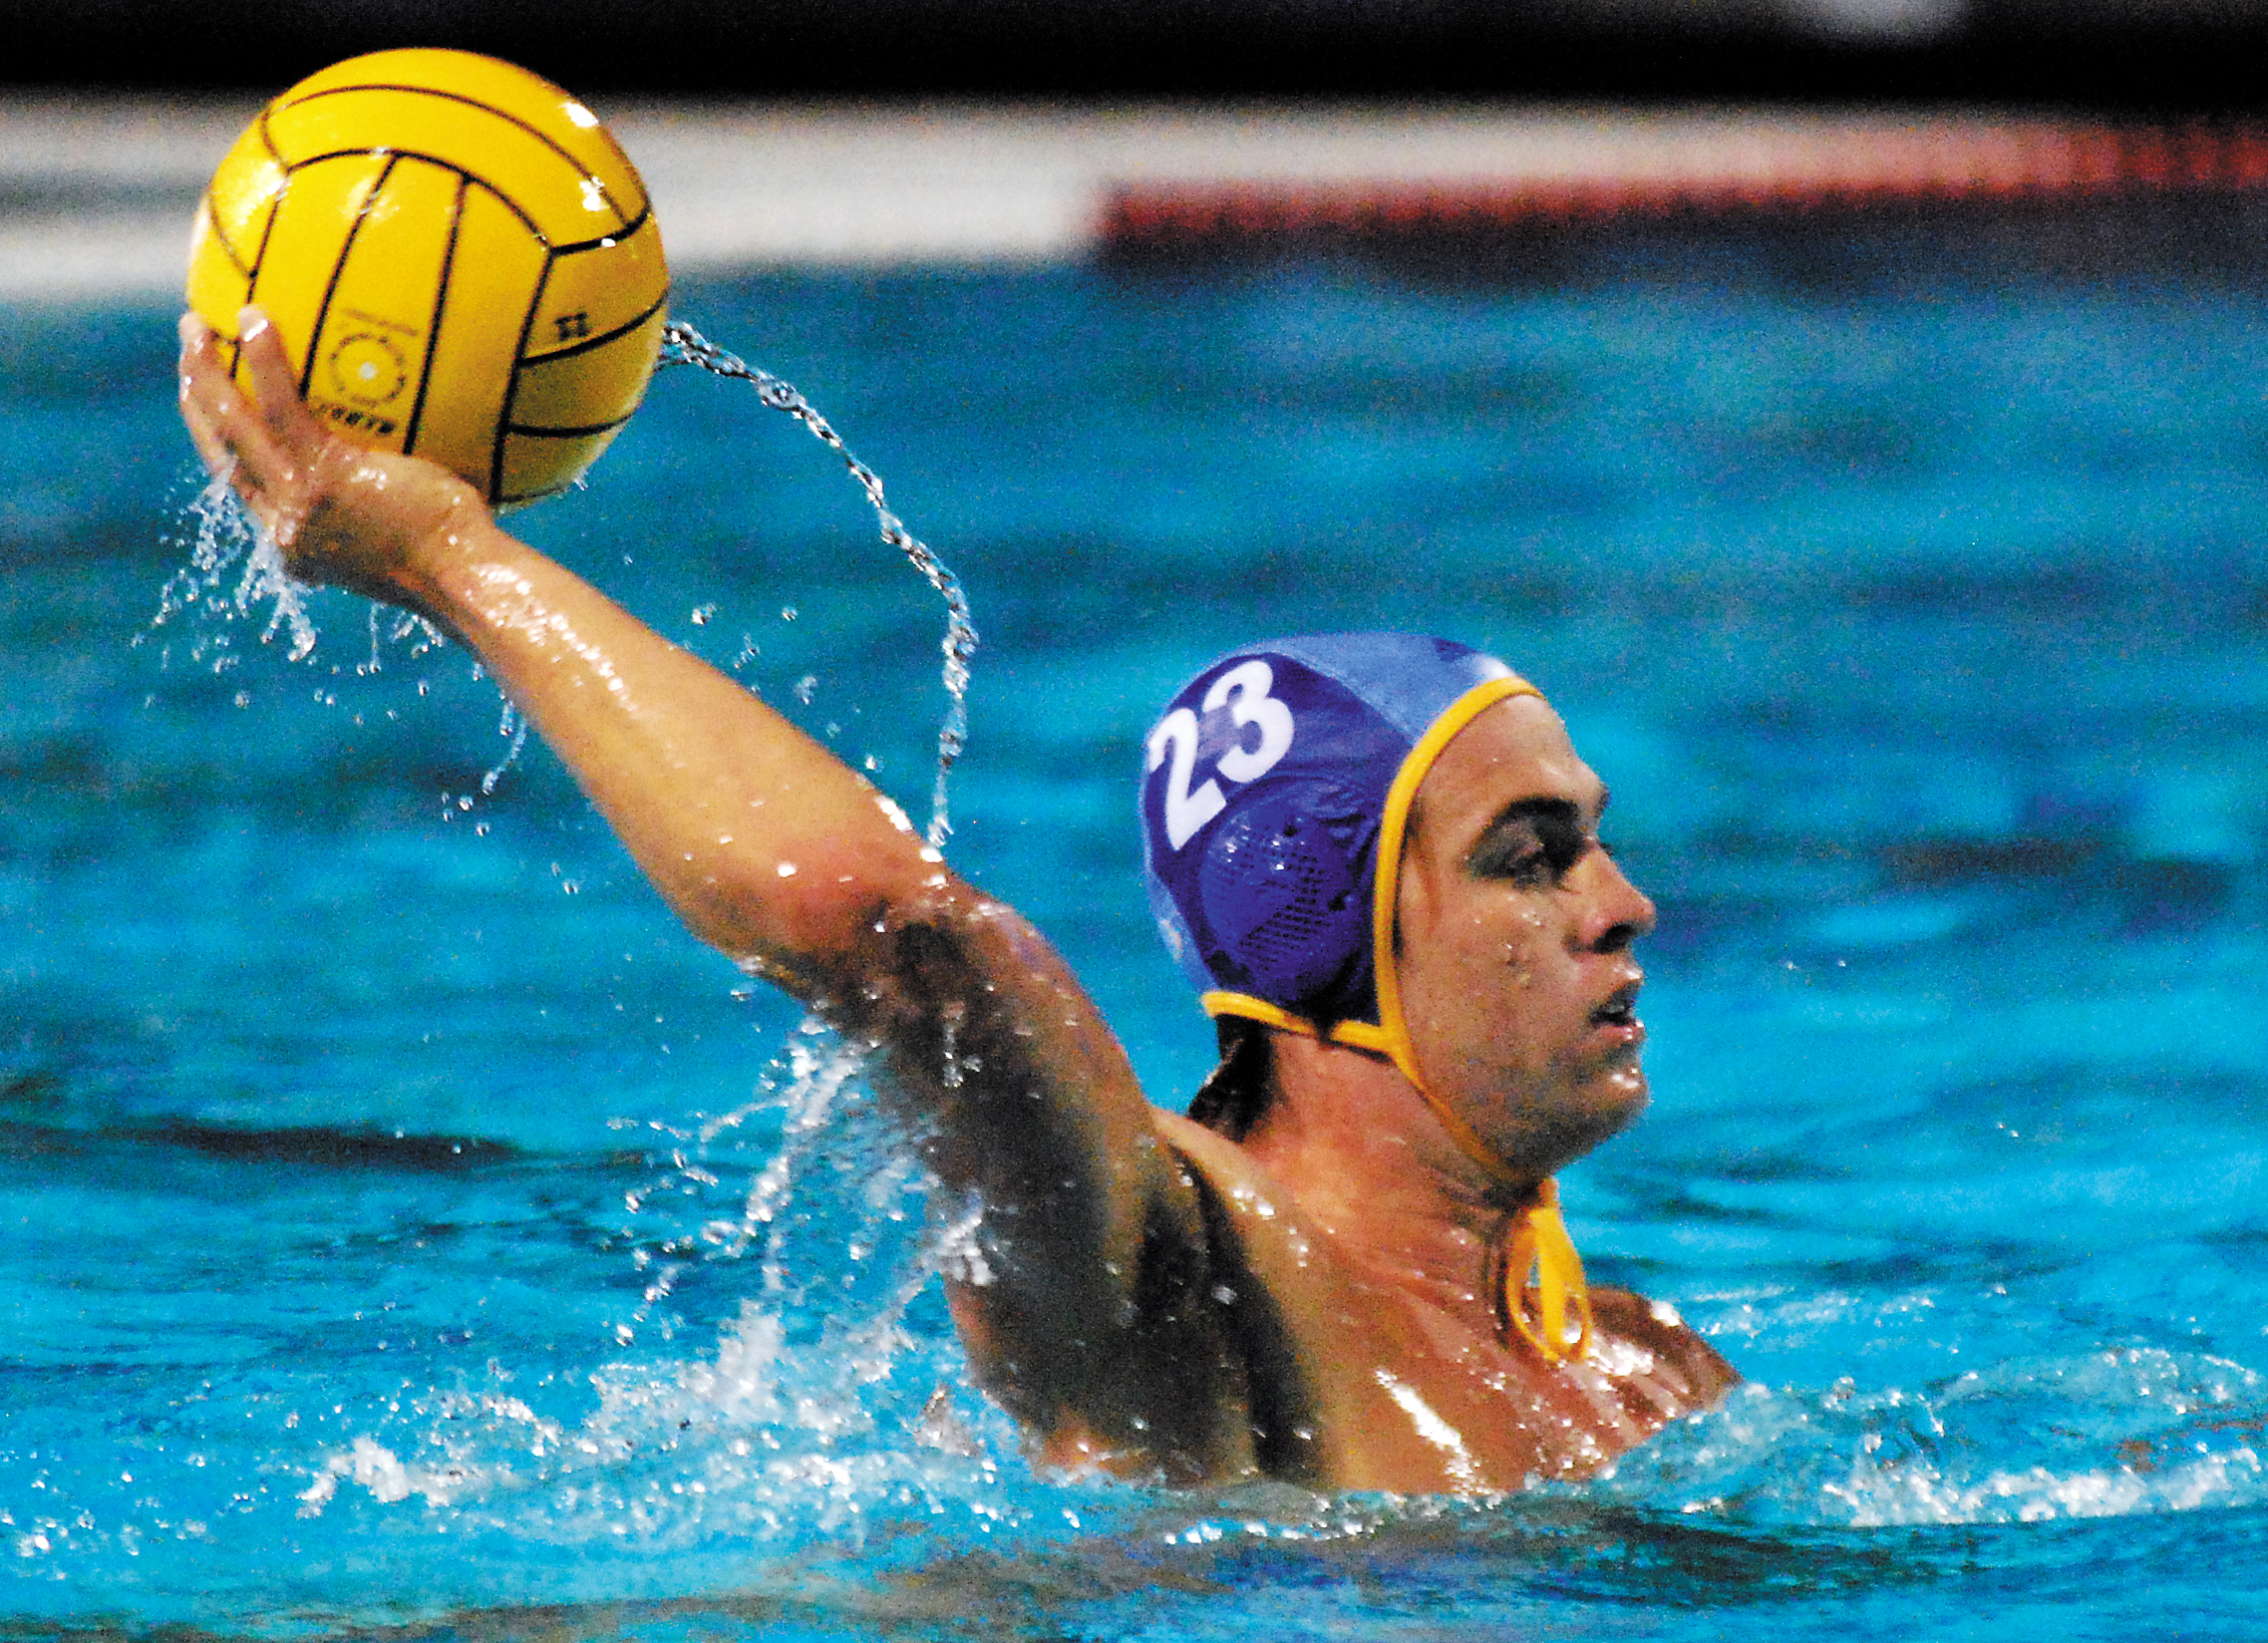 Senior utility Josh Samuels and the Bruins revved up their training this week to prepare for tough upcoming MPSF play.